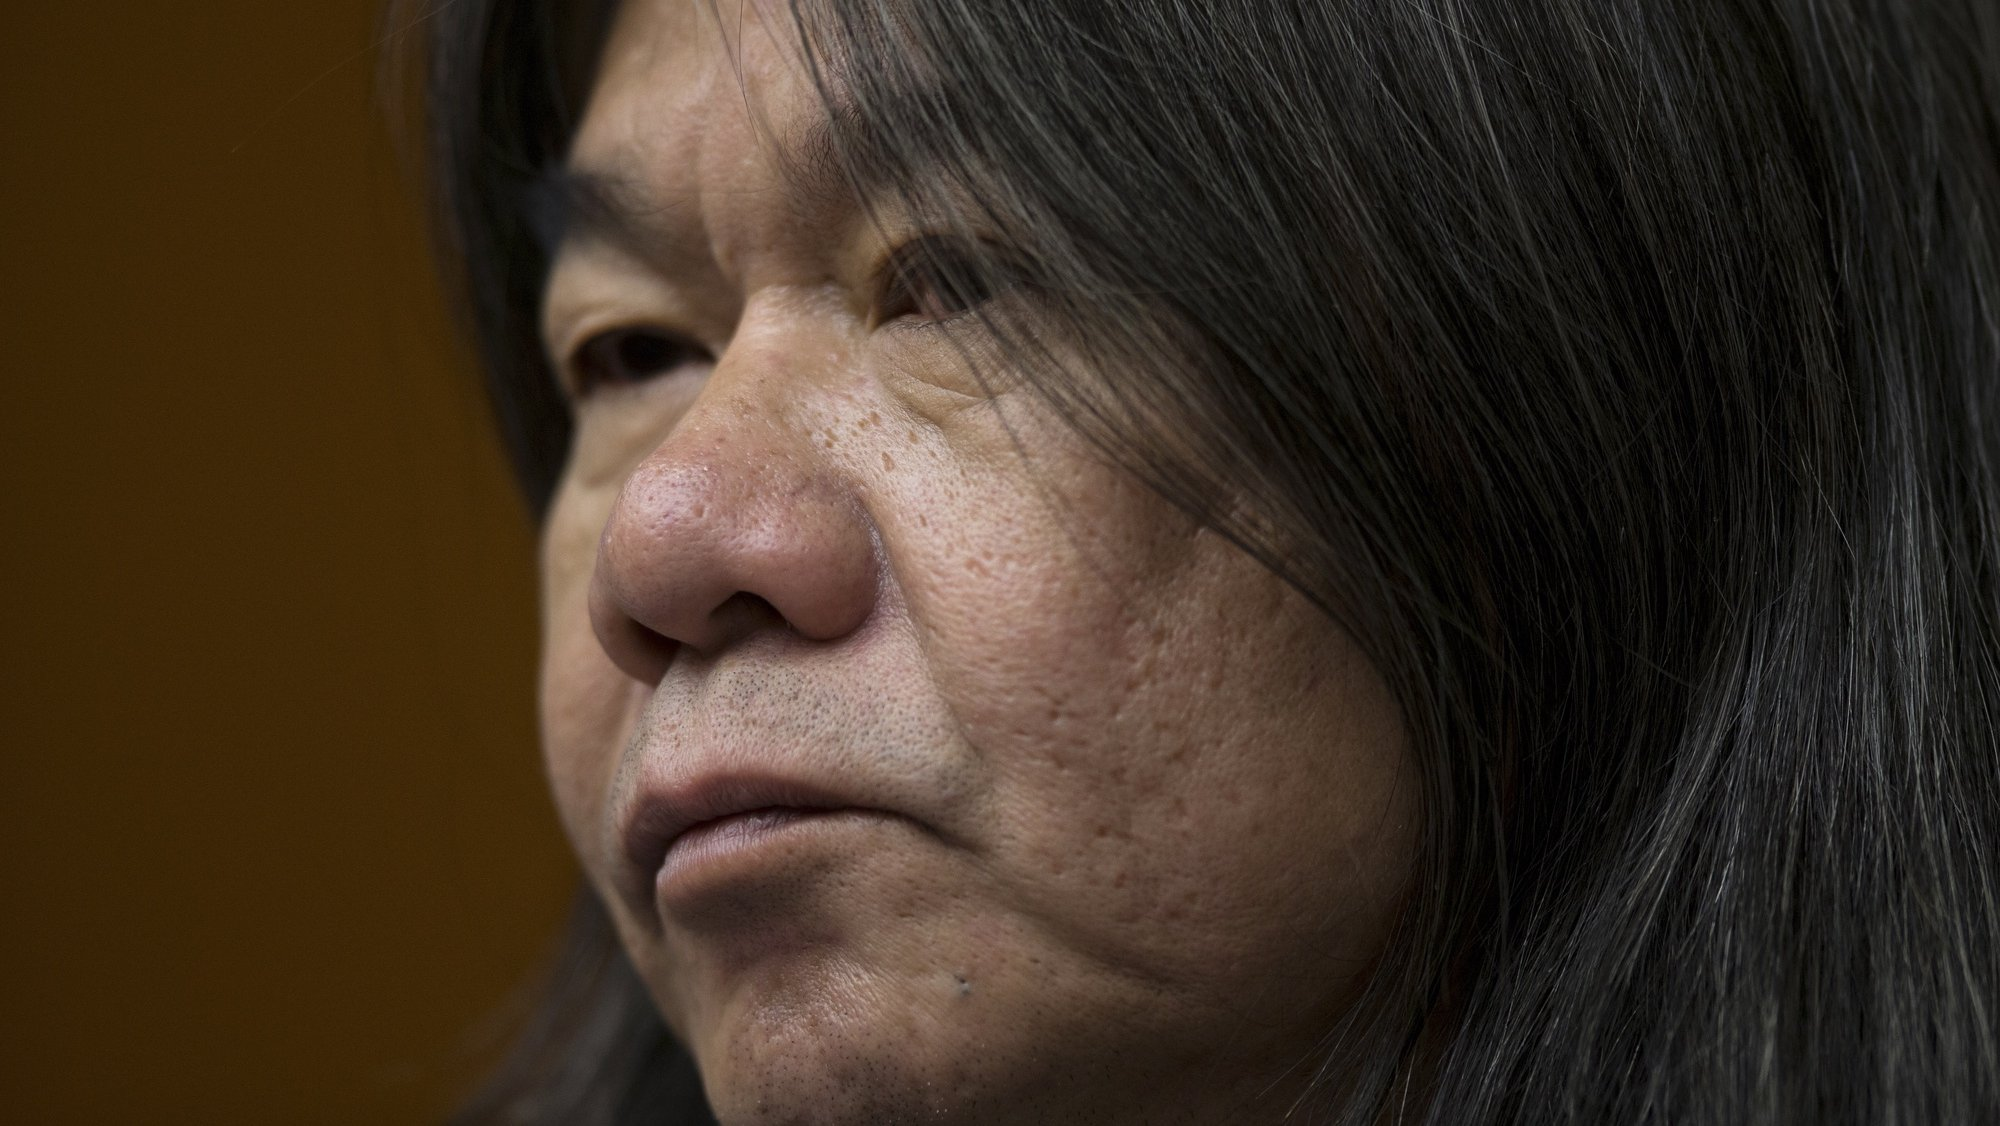 epa09439984 (FILE) - Leung Kwok-hung, also known as Long Hair, a pro-democracy lawmaker and founder of the League of Social Democrats, speaks during a press conference at the Legislative Council in Hong Kong, China, 08 February 2017 (reissued 01 September 2021). Seven prominent pro-democracy activists, Leung Kwok-hung, were sentenced on 01 September to up to 16 months in jail for their role in an unauthorized assembly in October 2019.  EPA/JEROME FAVRE *** Local Caption *** 56524242